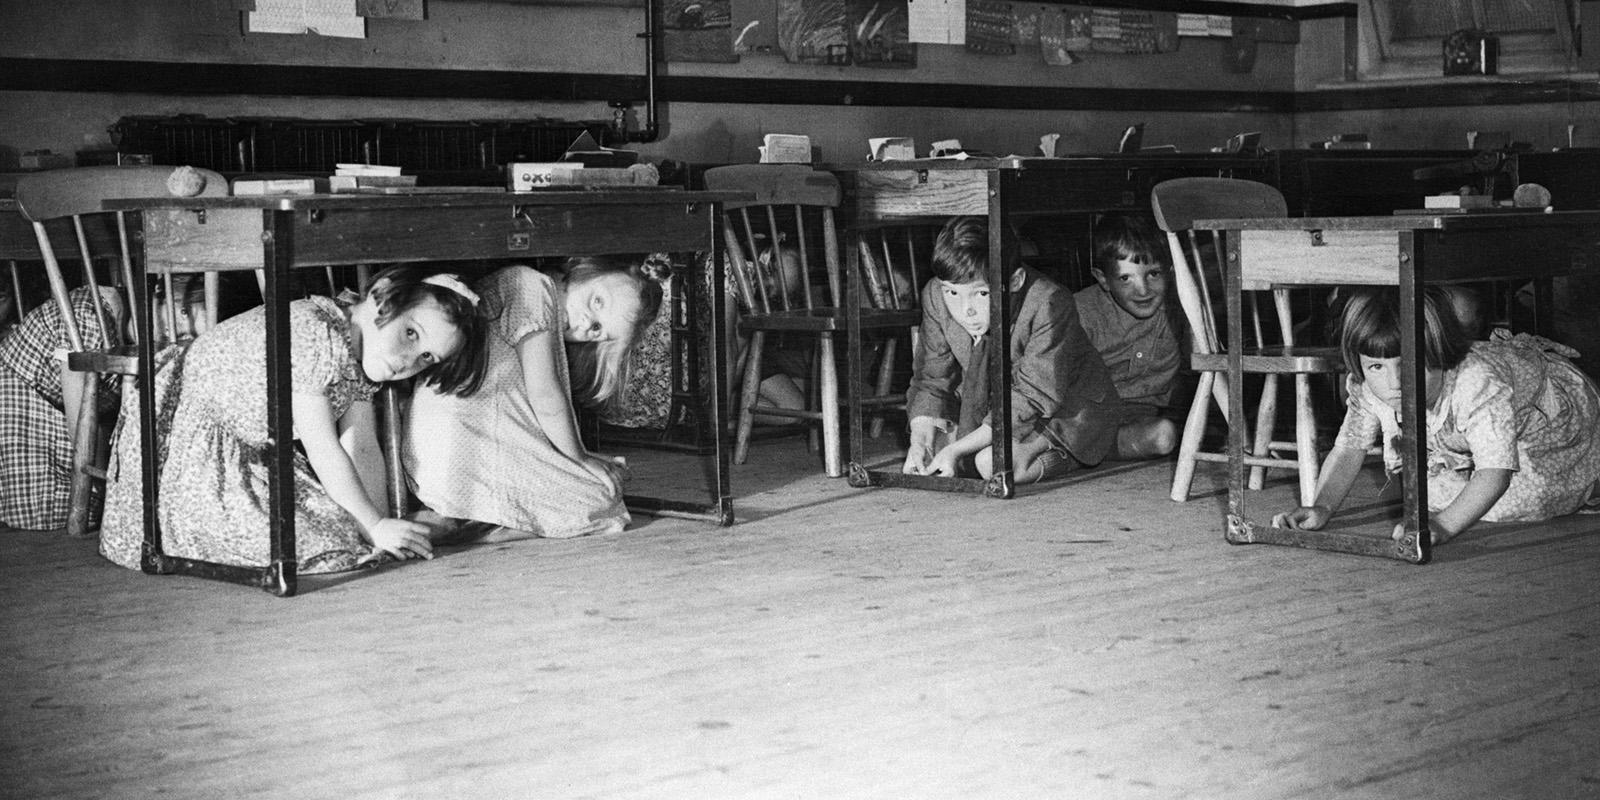 Children in classroom, hiding under tables